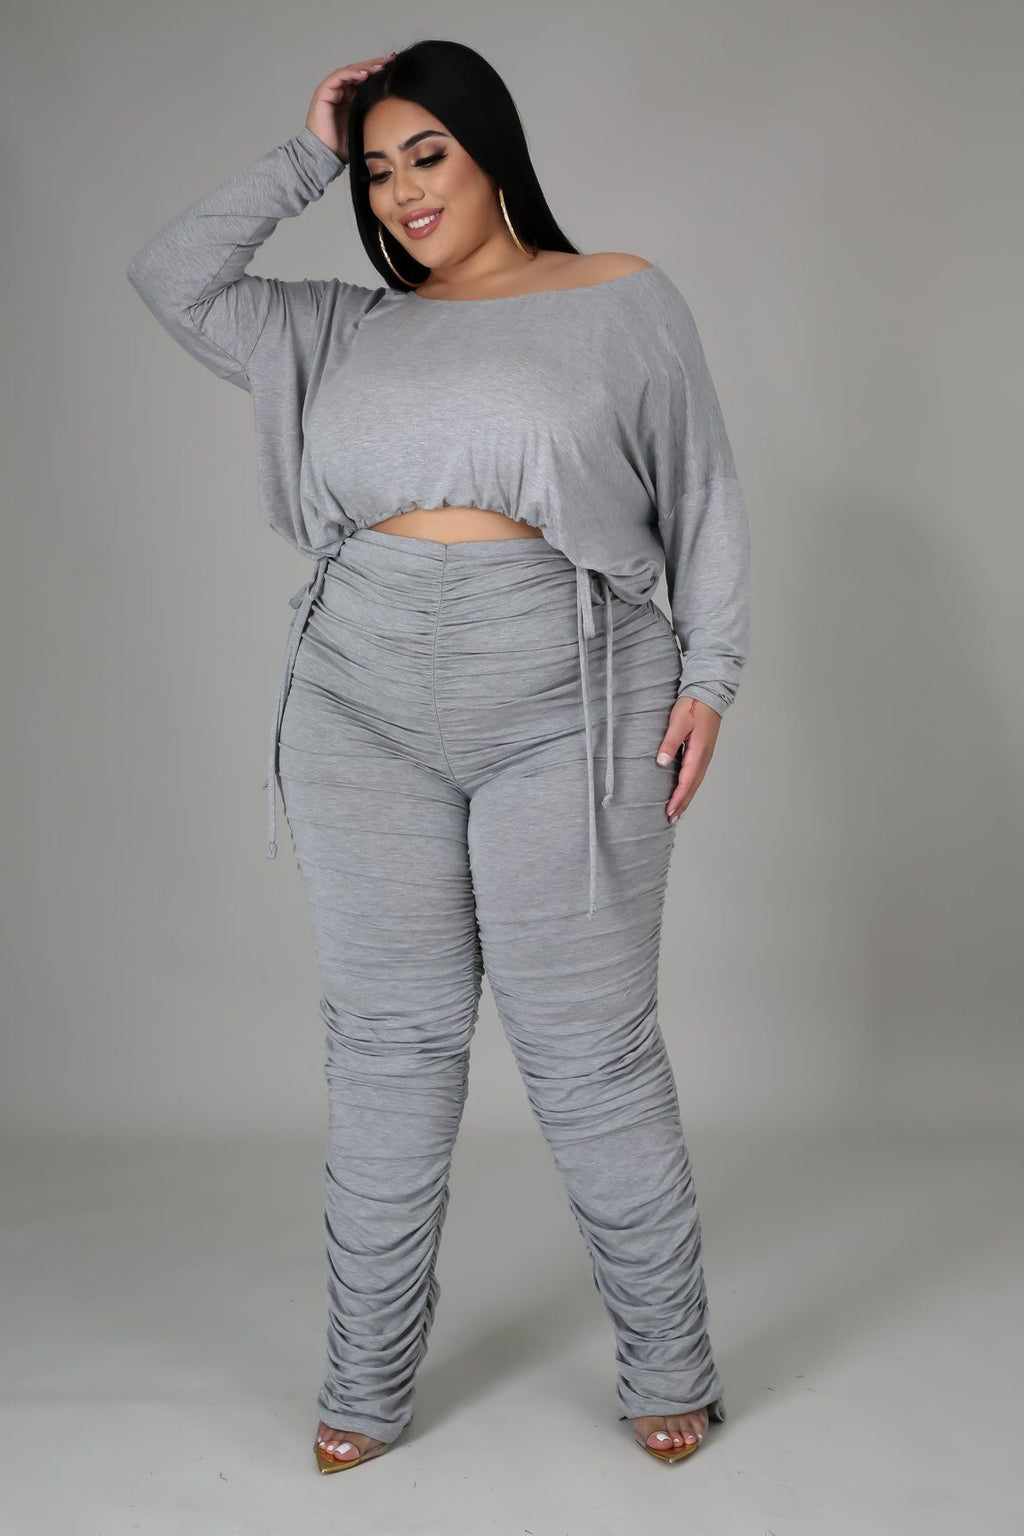 Just Your Type Pant Set